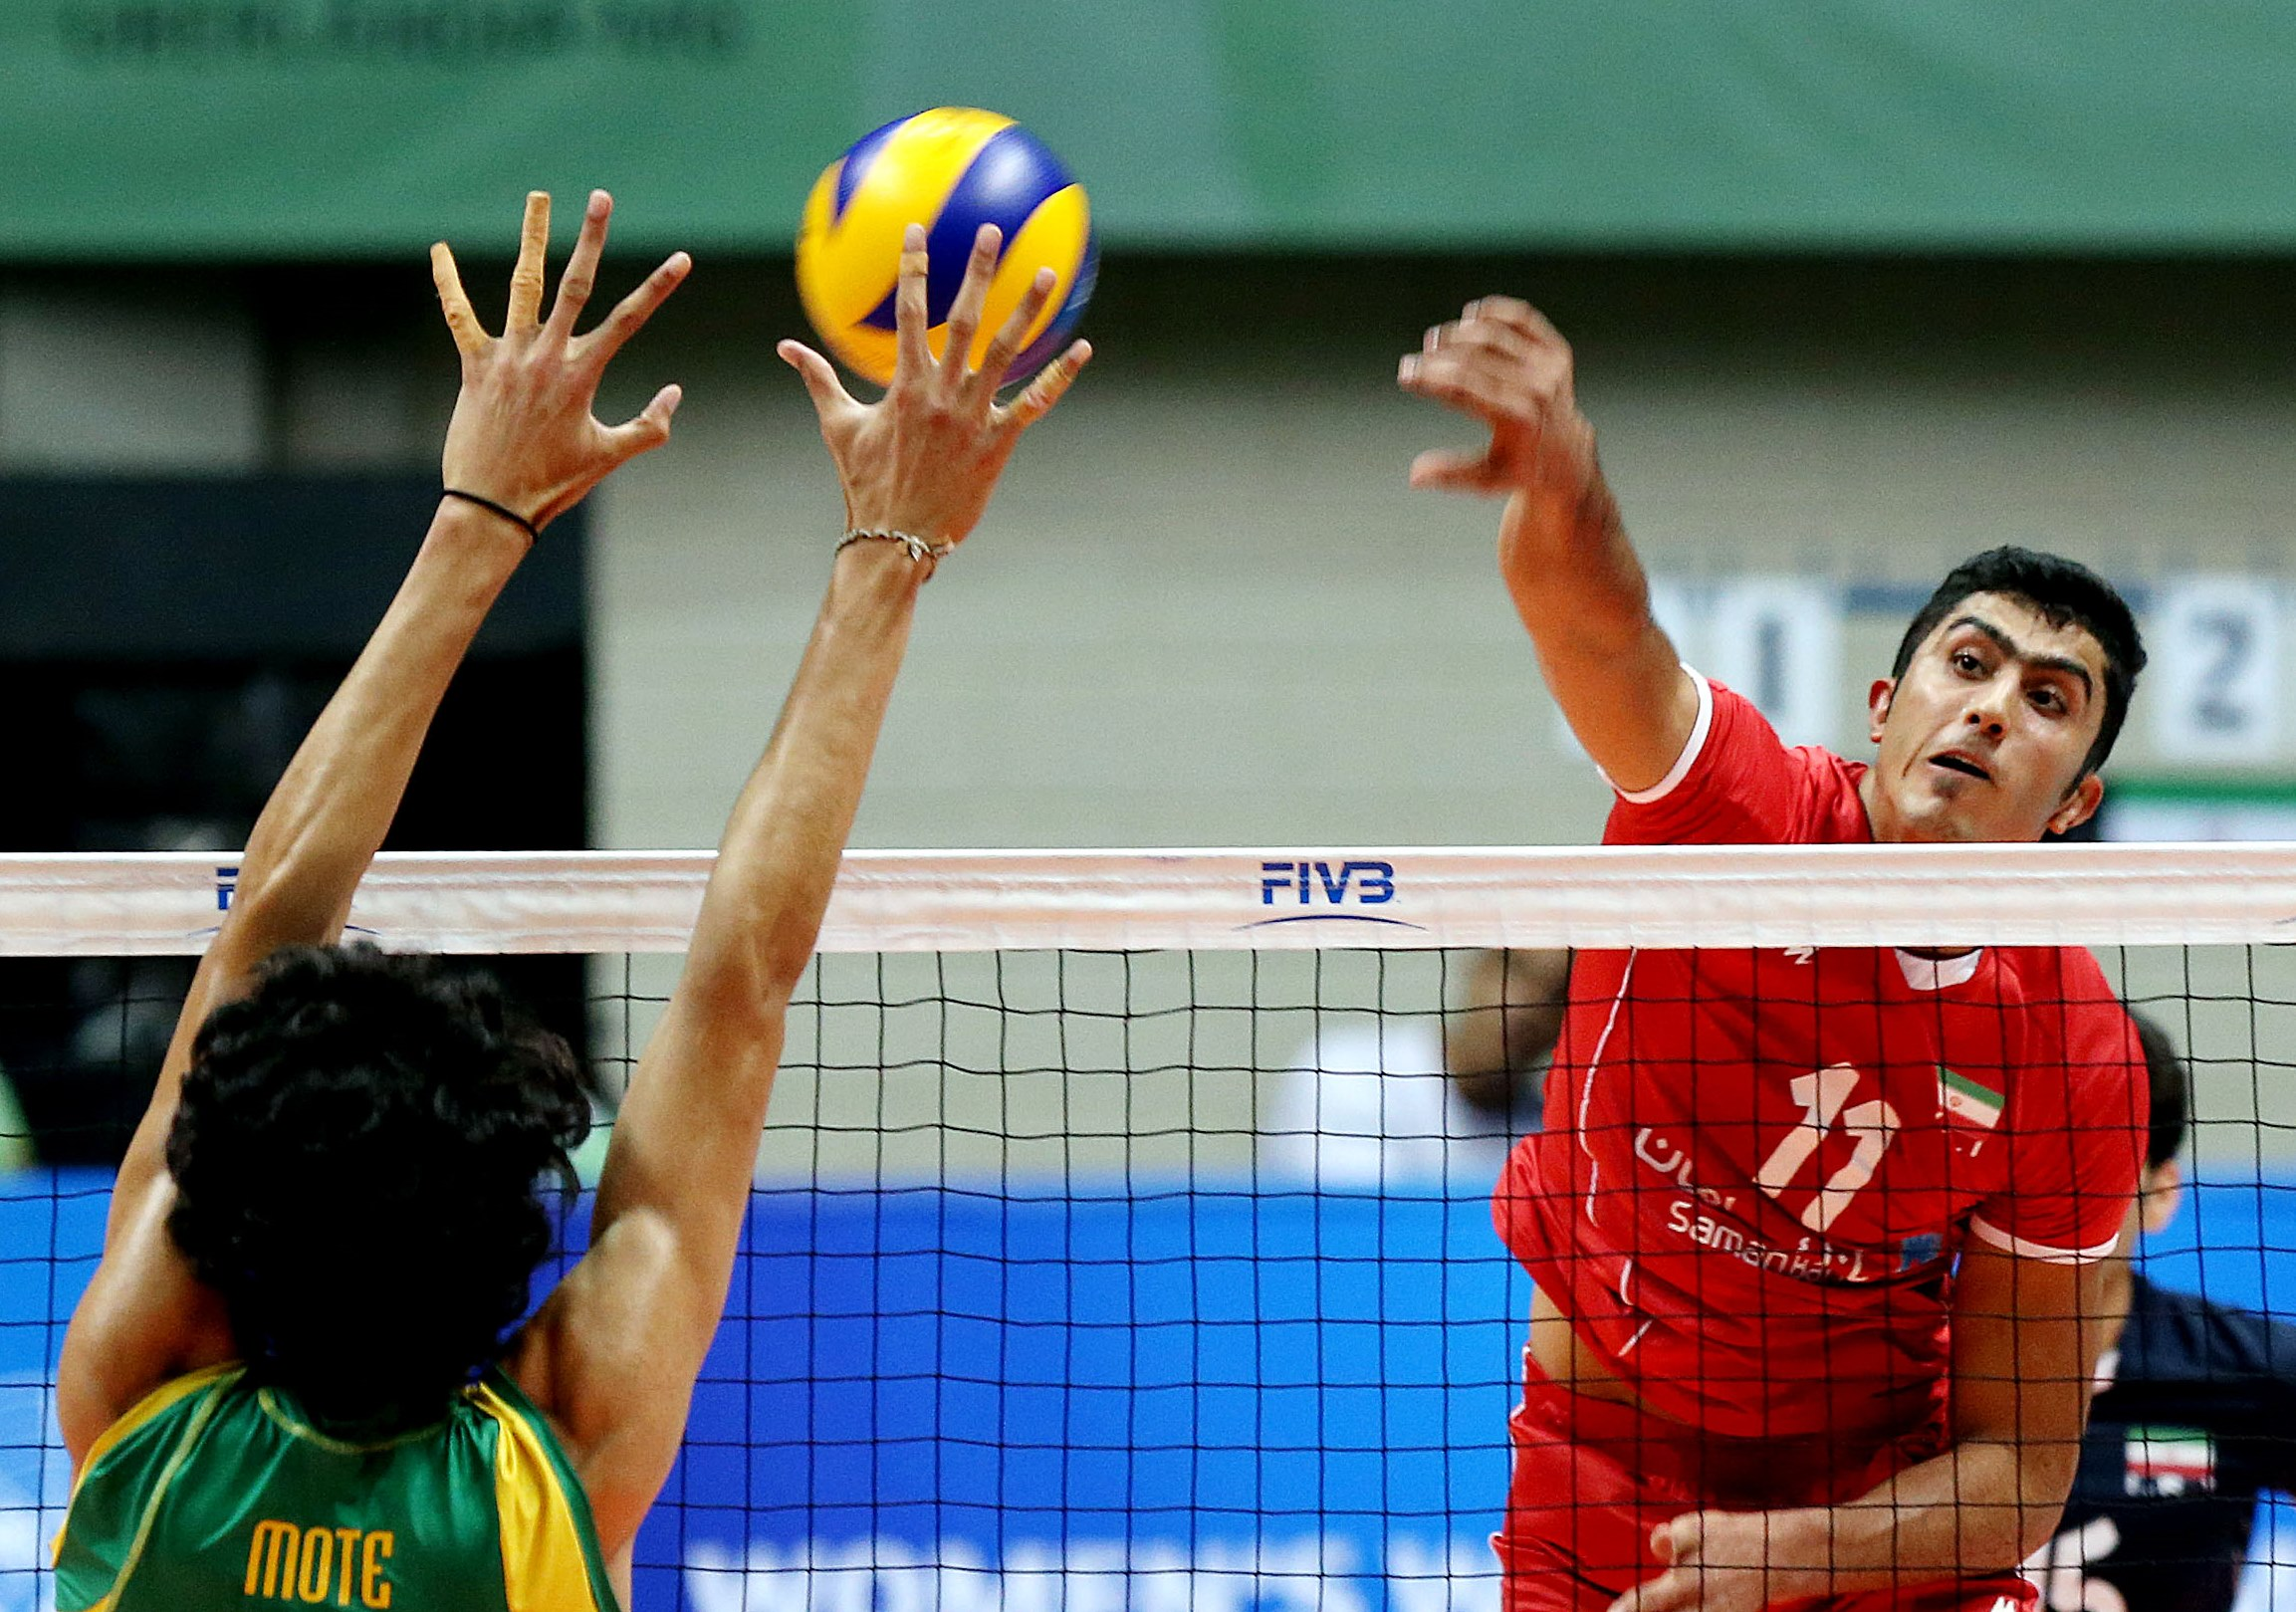 Mojtaba Mirzajanpour Mojtaba Mirzajanpour iranian volleyball player Volleywood